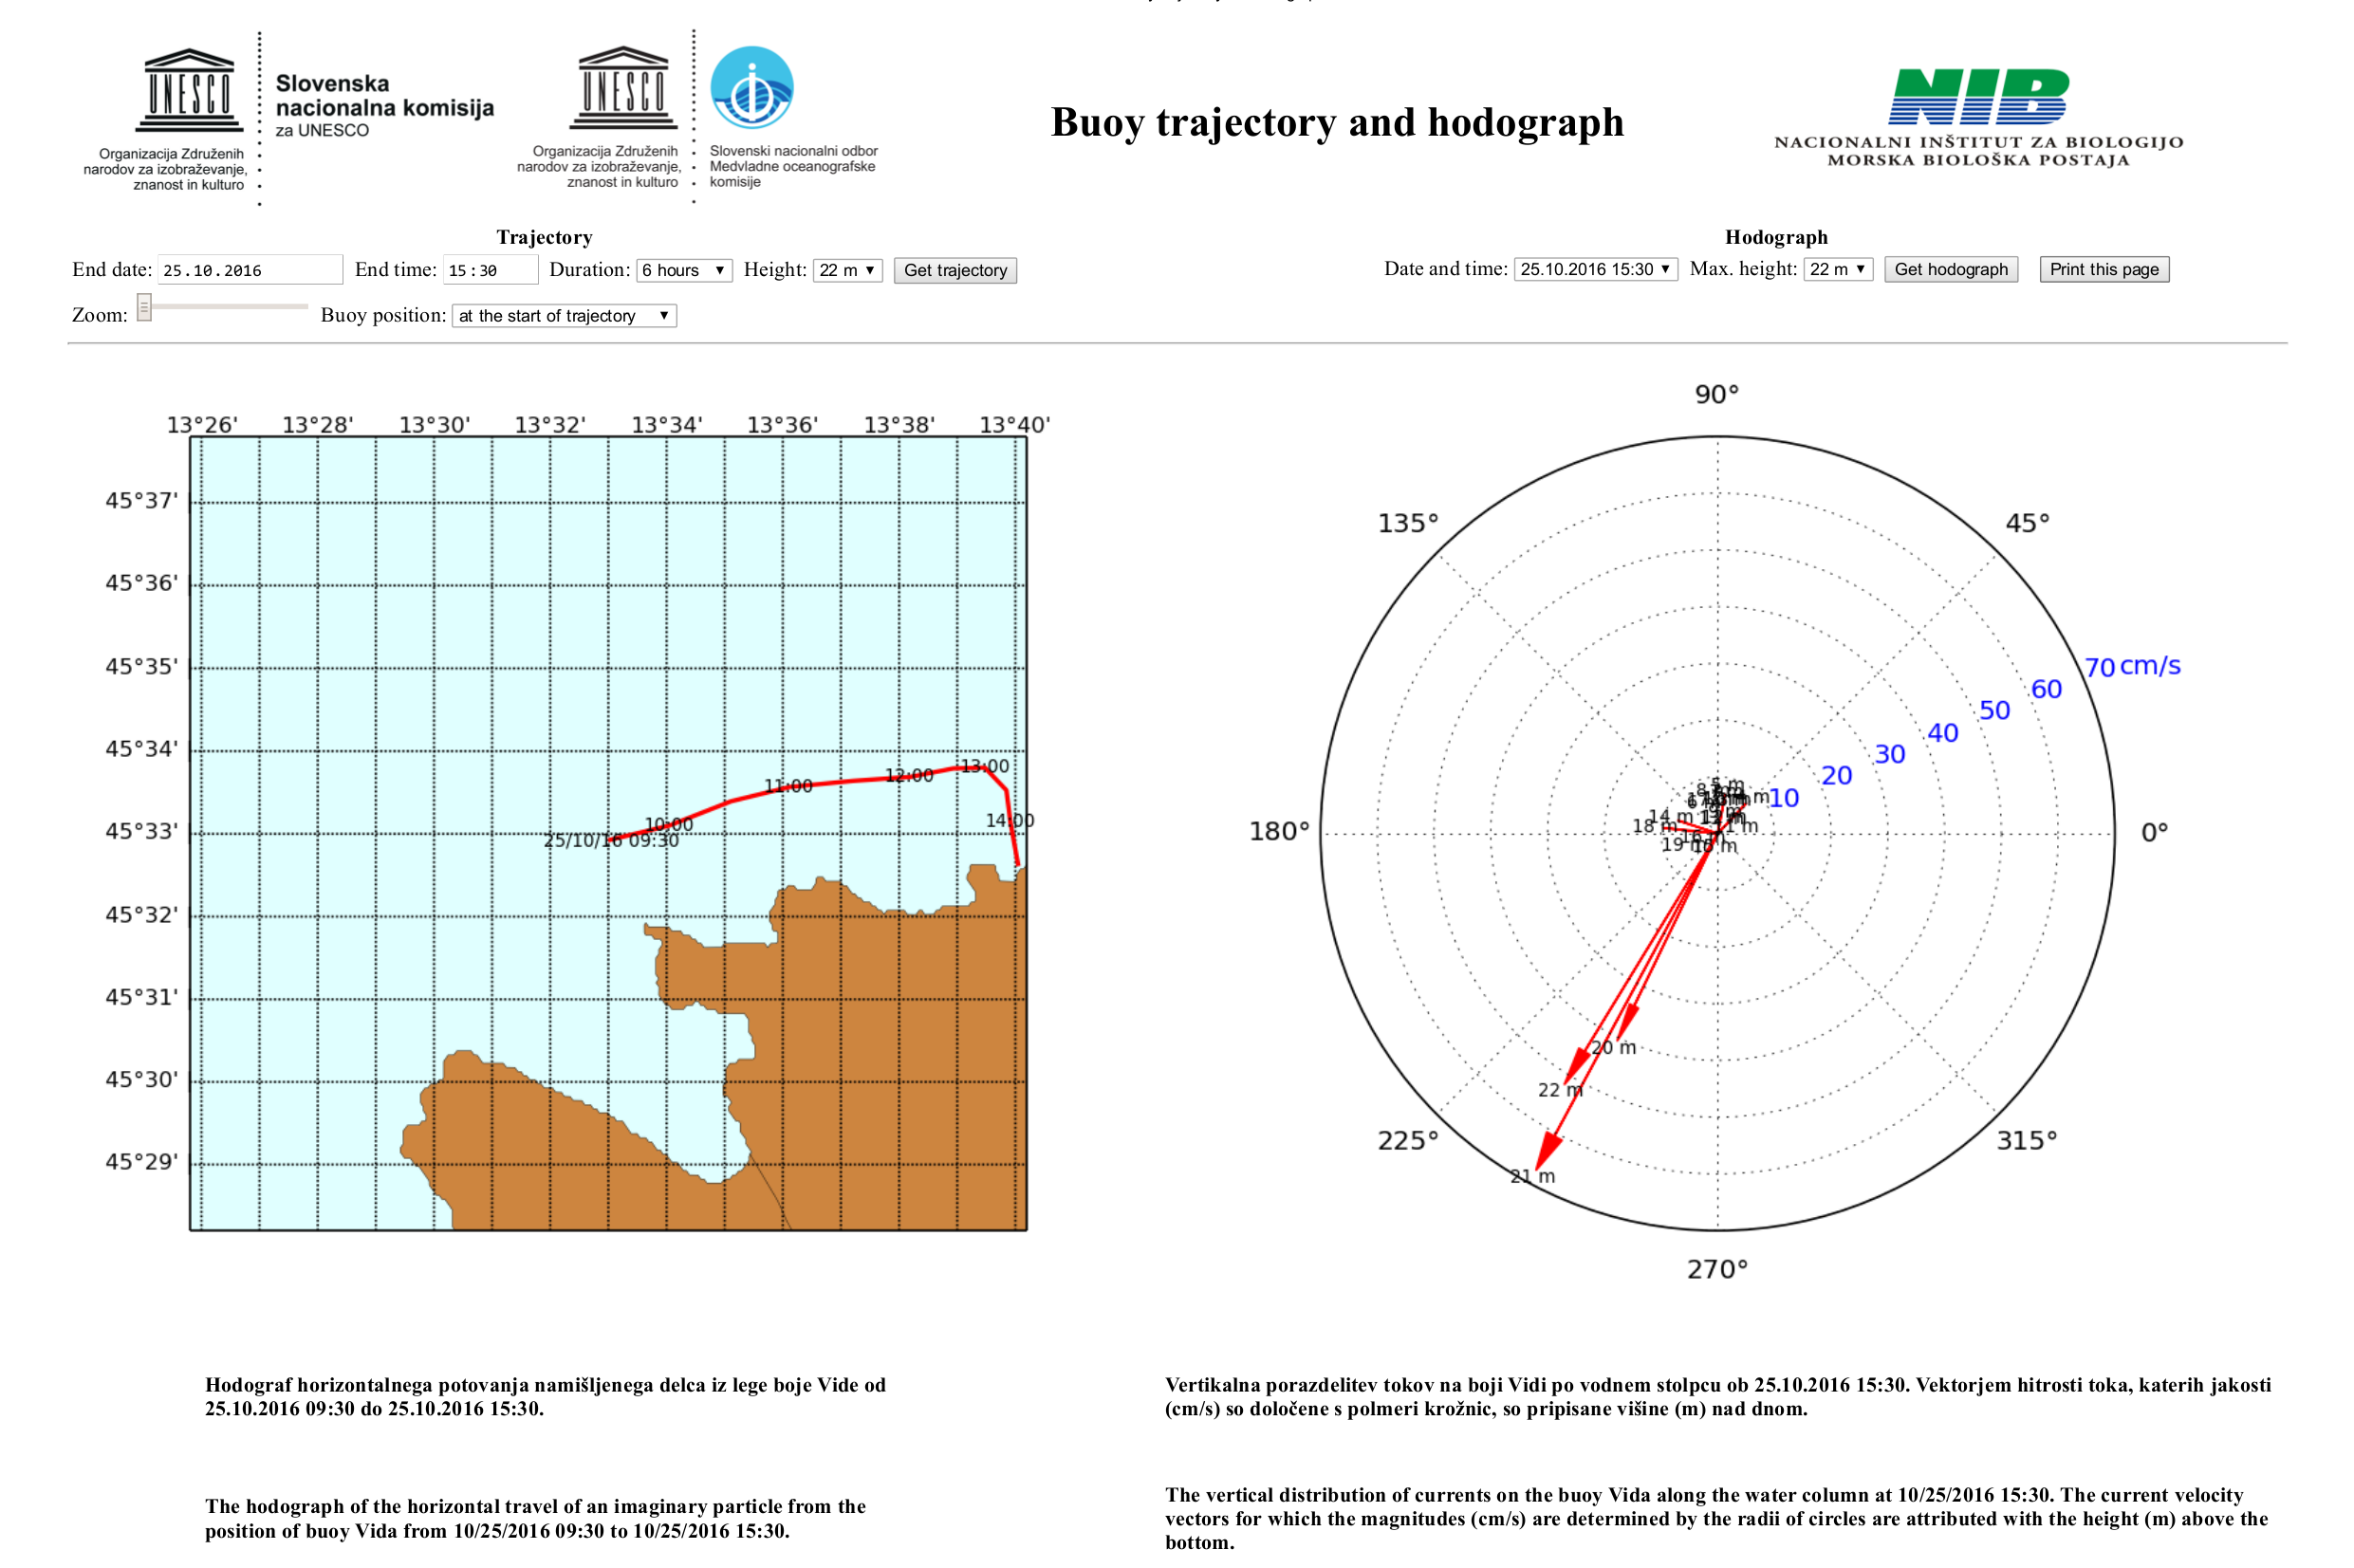 Buoy trajectory and hodograph